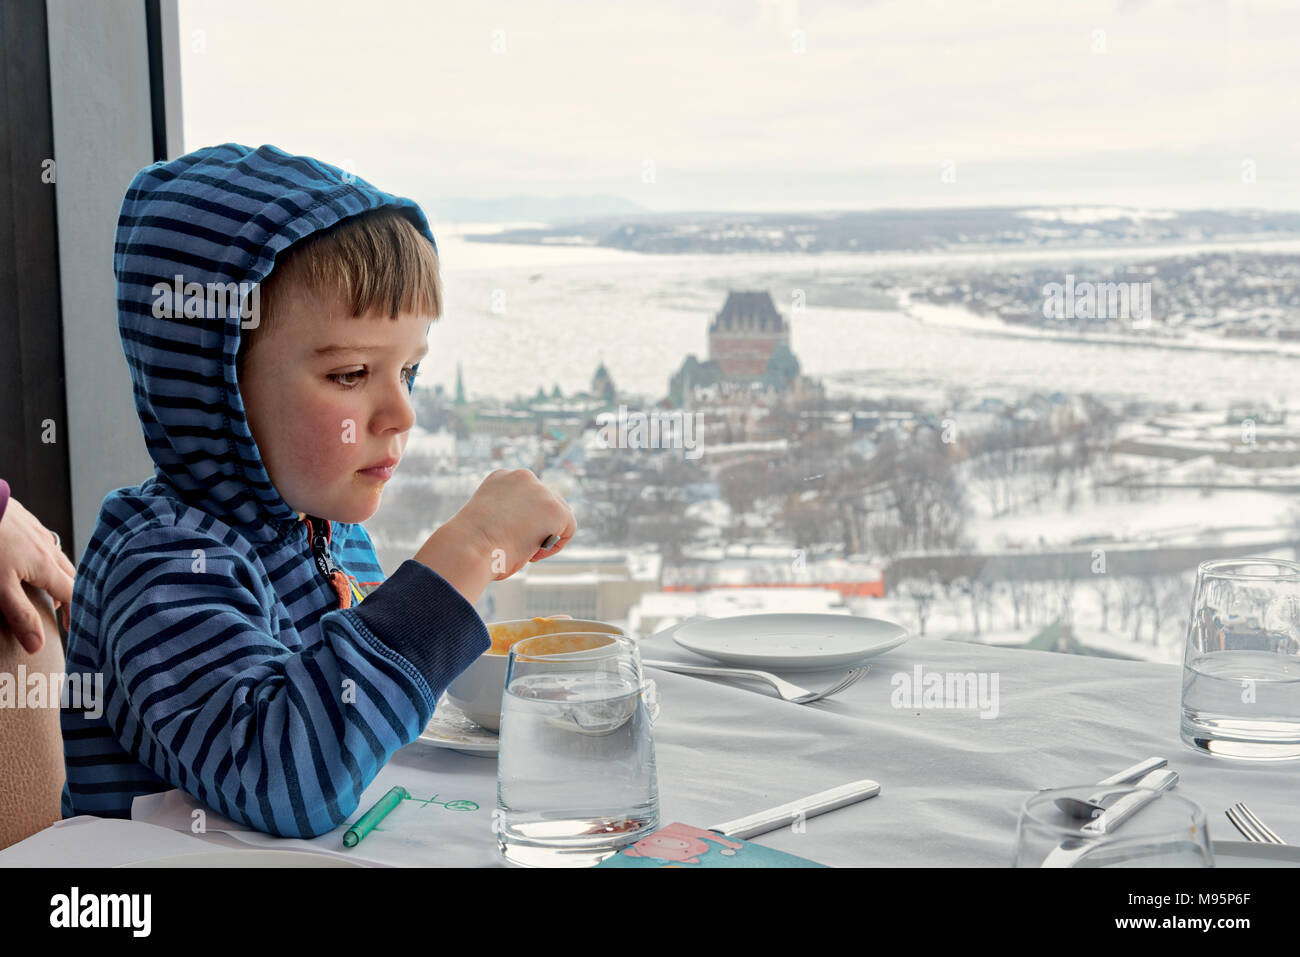 A five year old boy eating in the Ciel! rotating restaurant in Quebec City, with the Chateau Frontenac and the frozen St Lawrence beyond. - Stock Image